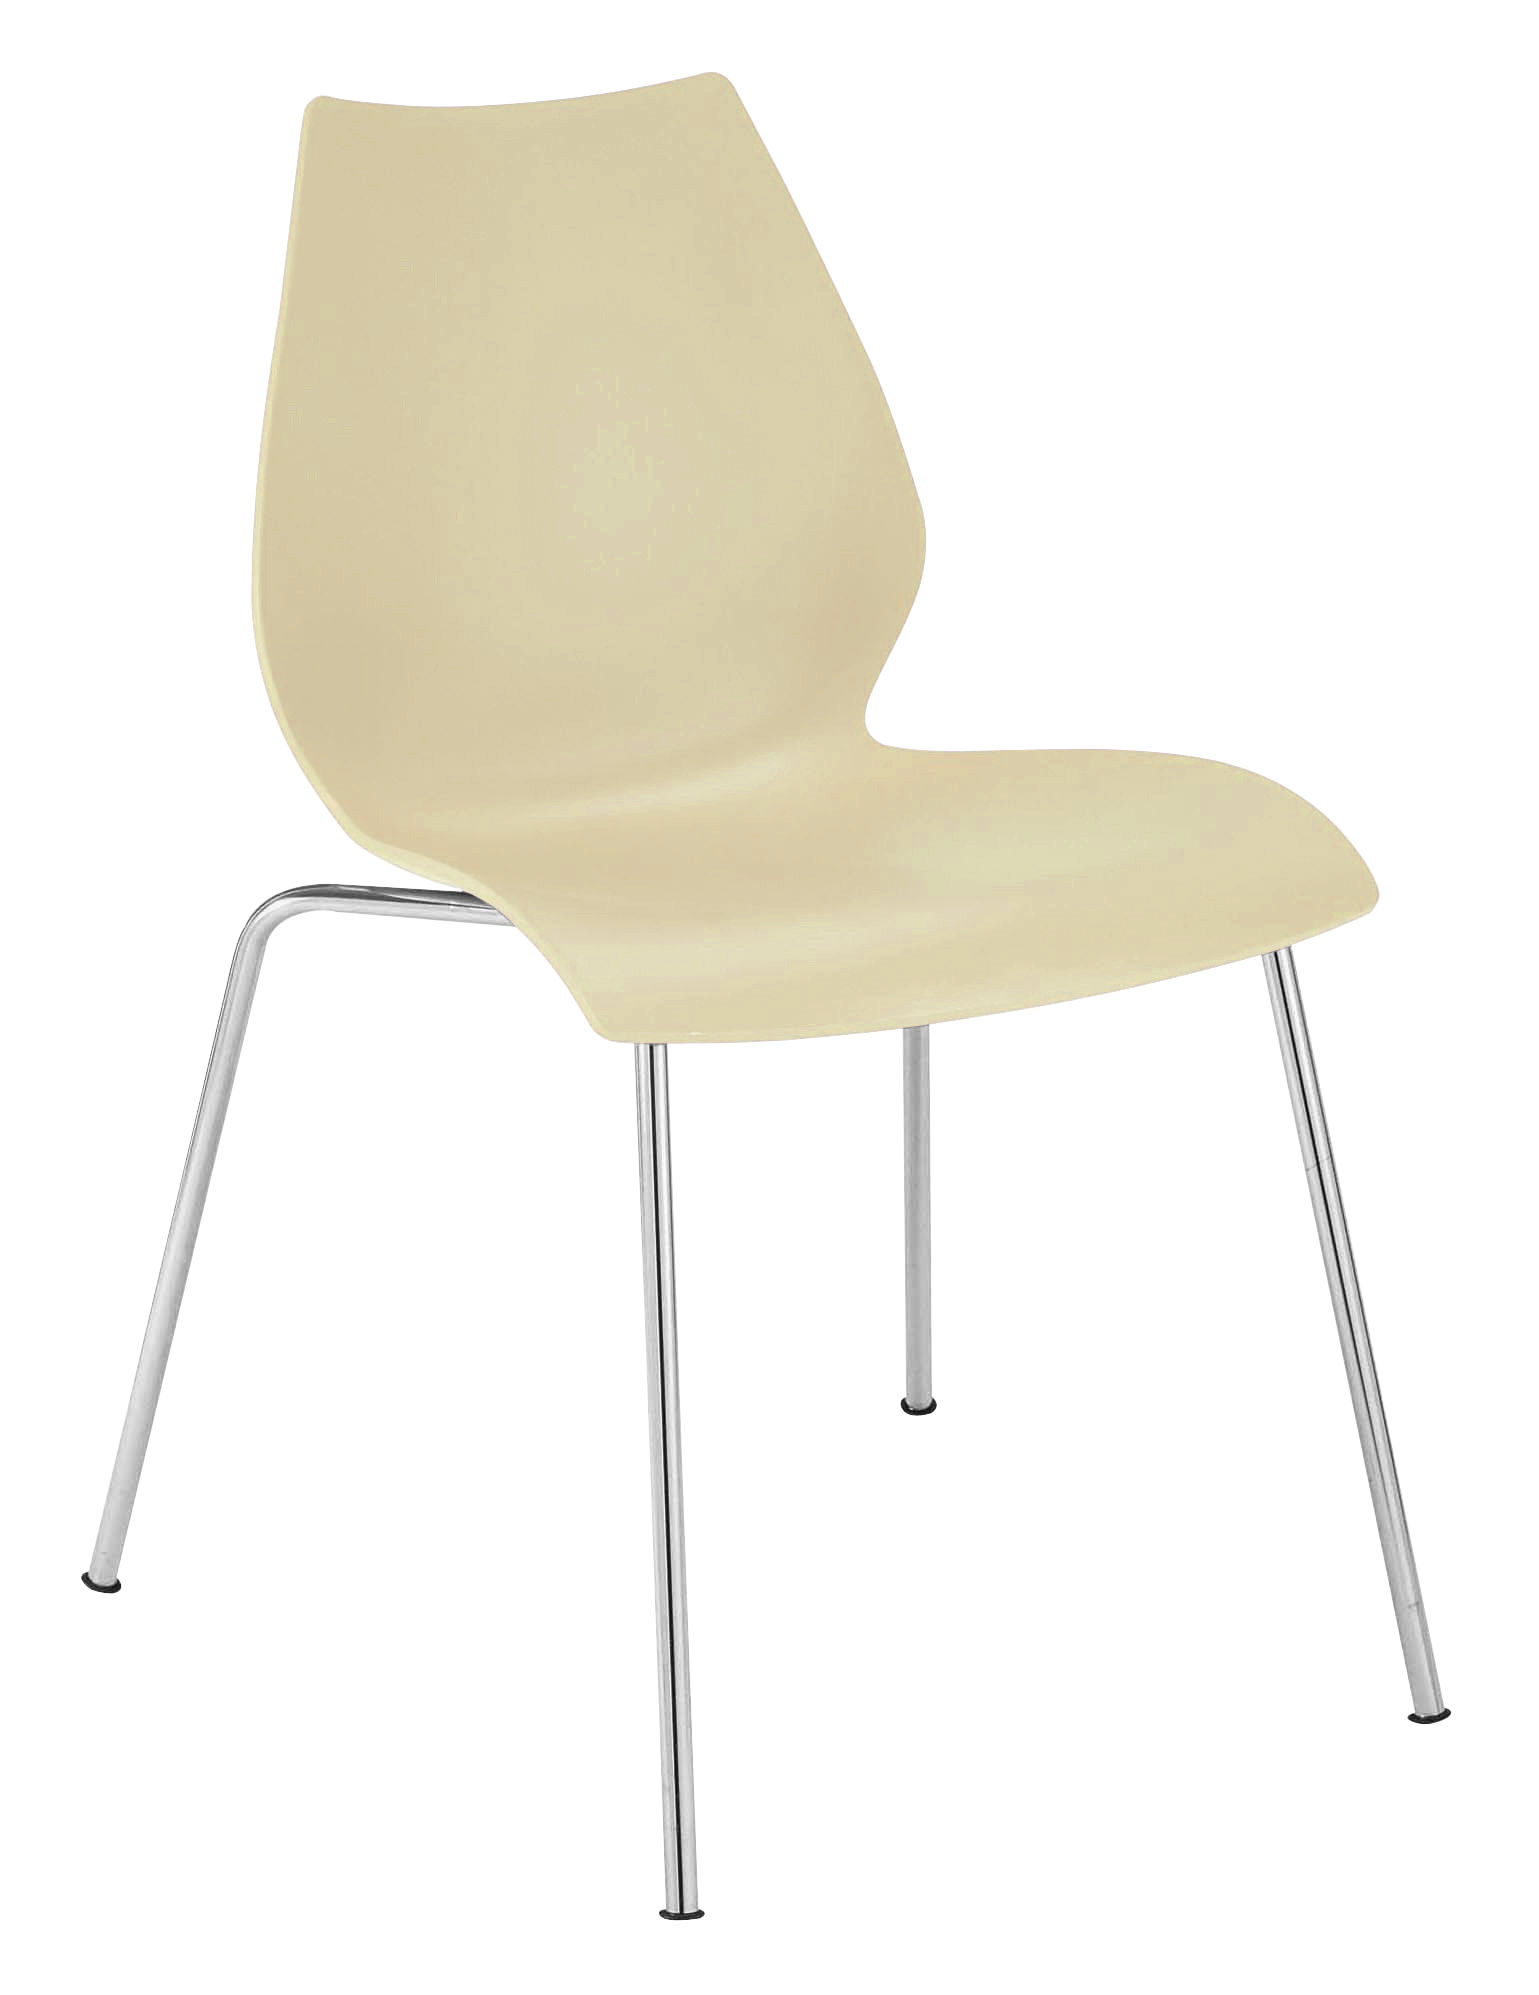 maui stackable chair plastic seat metal legs yellow